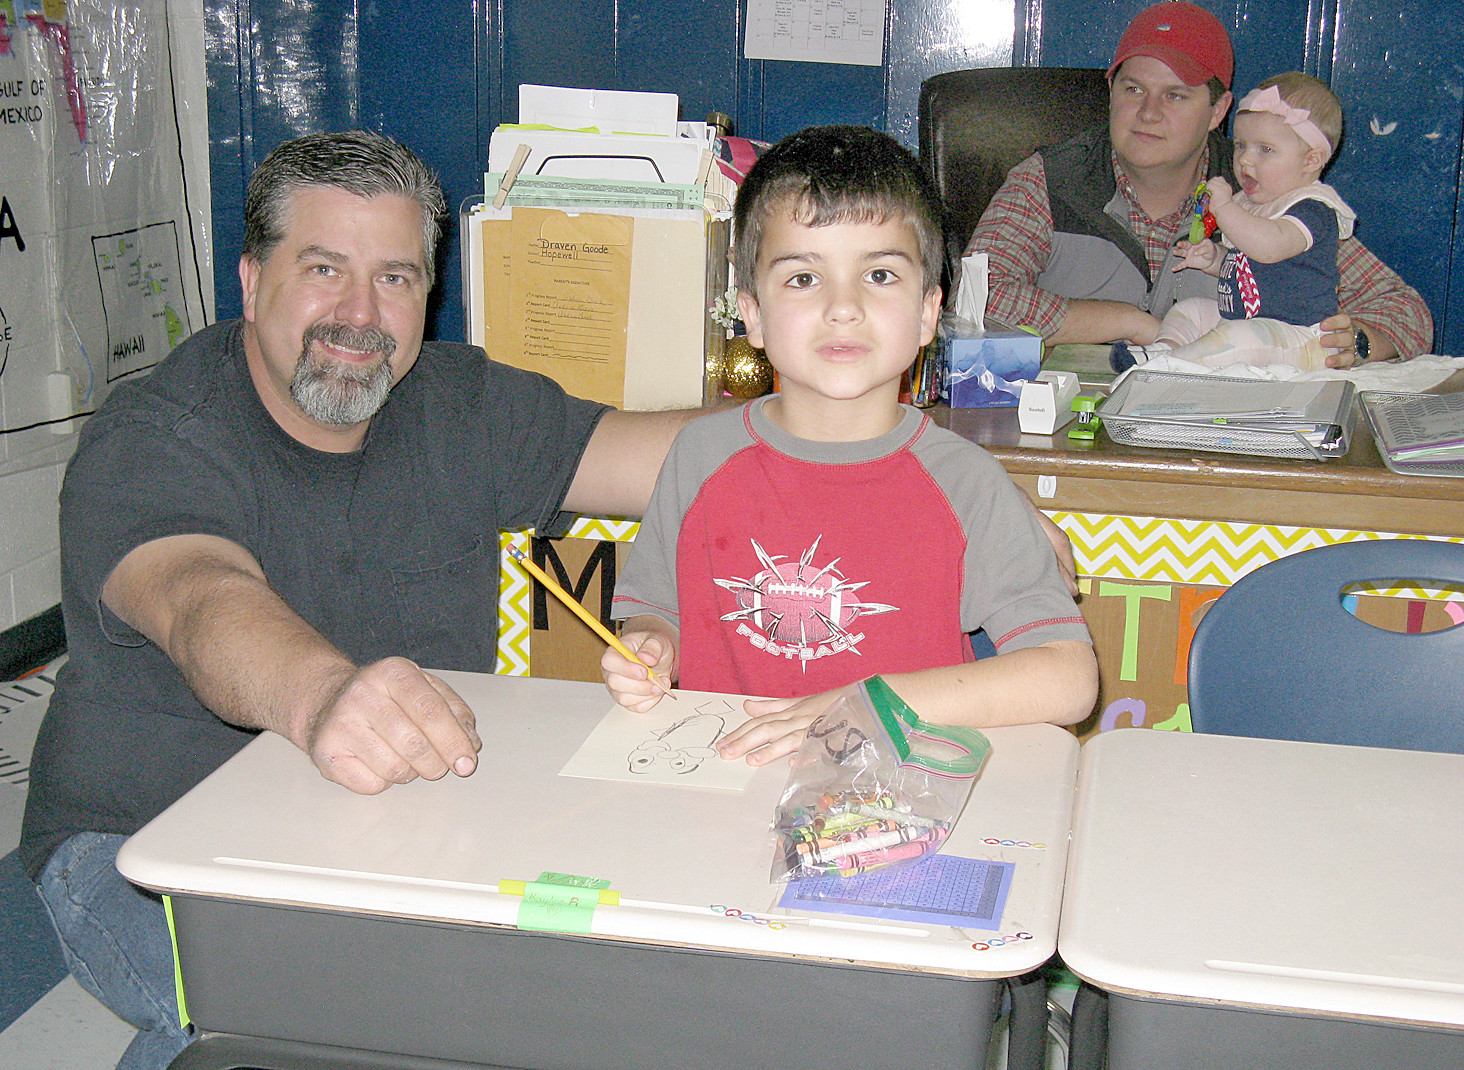 Gage Chastain and his dad work together to draw a Lorax, as part of the Dr. Seuss in schools initiative at Hopewell Elementary.